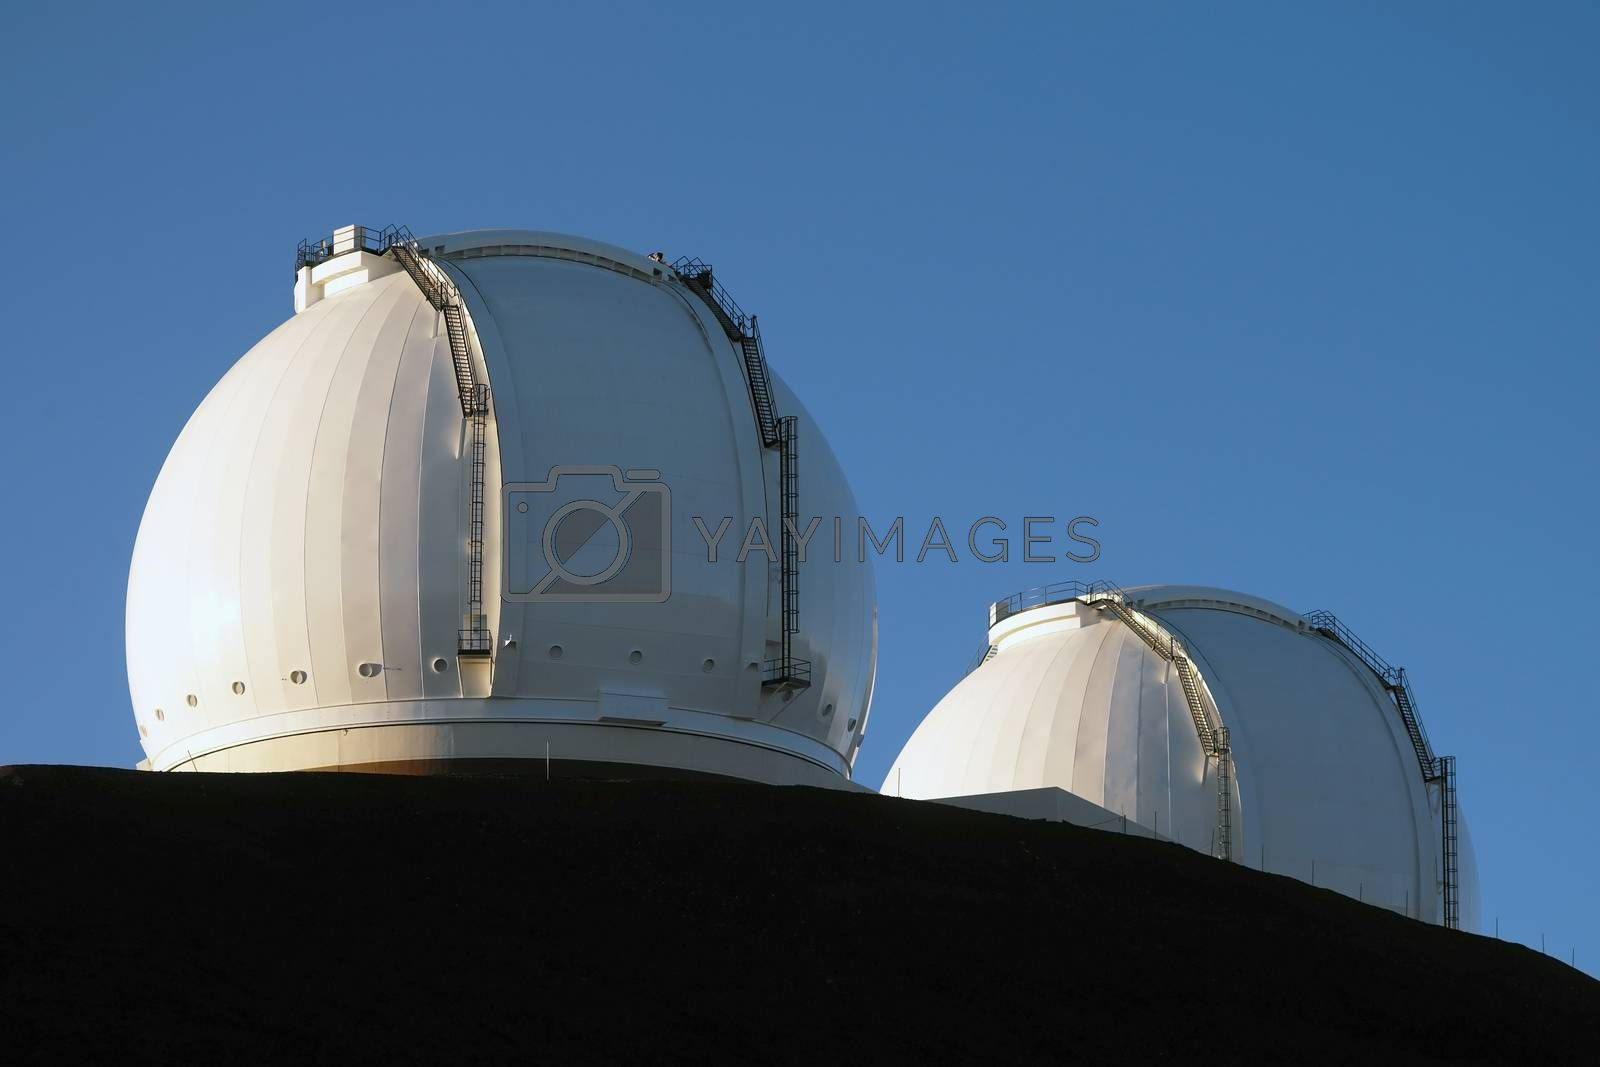 Royalty free image of W.M. Keck Observatory - Hawaii - USA by SteveAllenPhoto